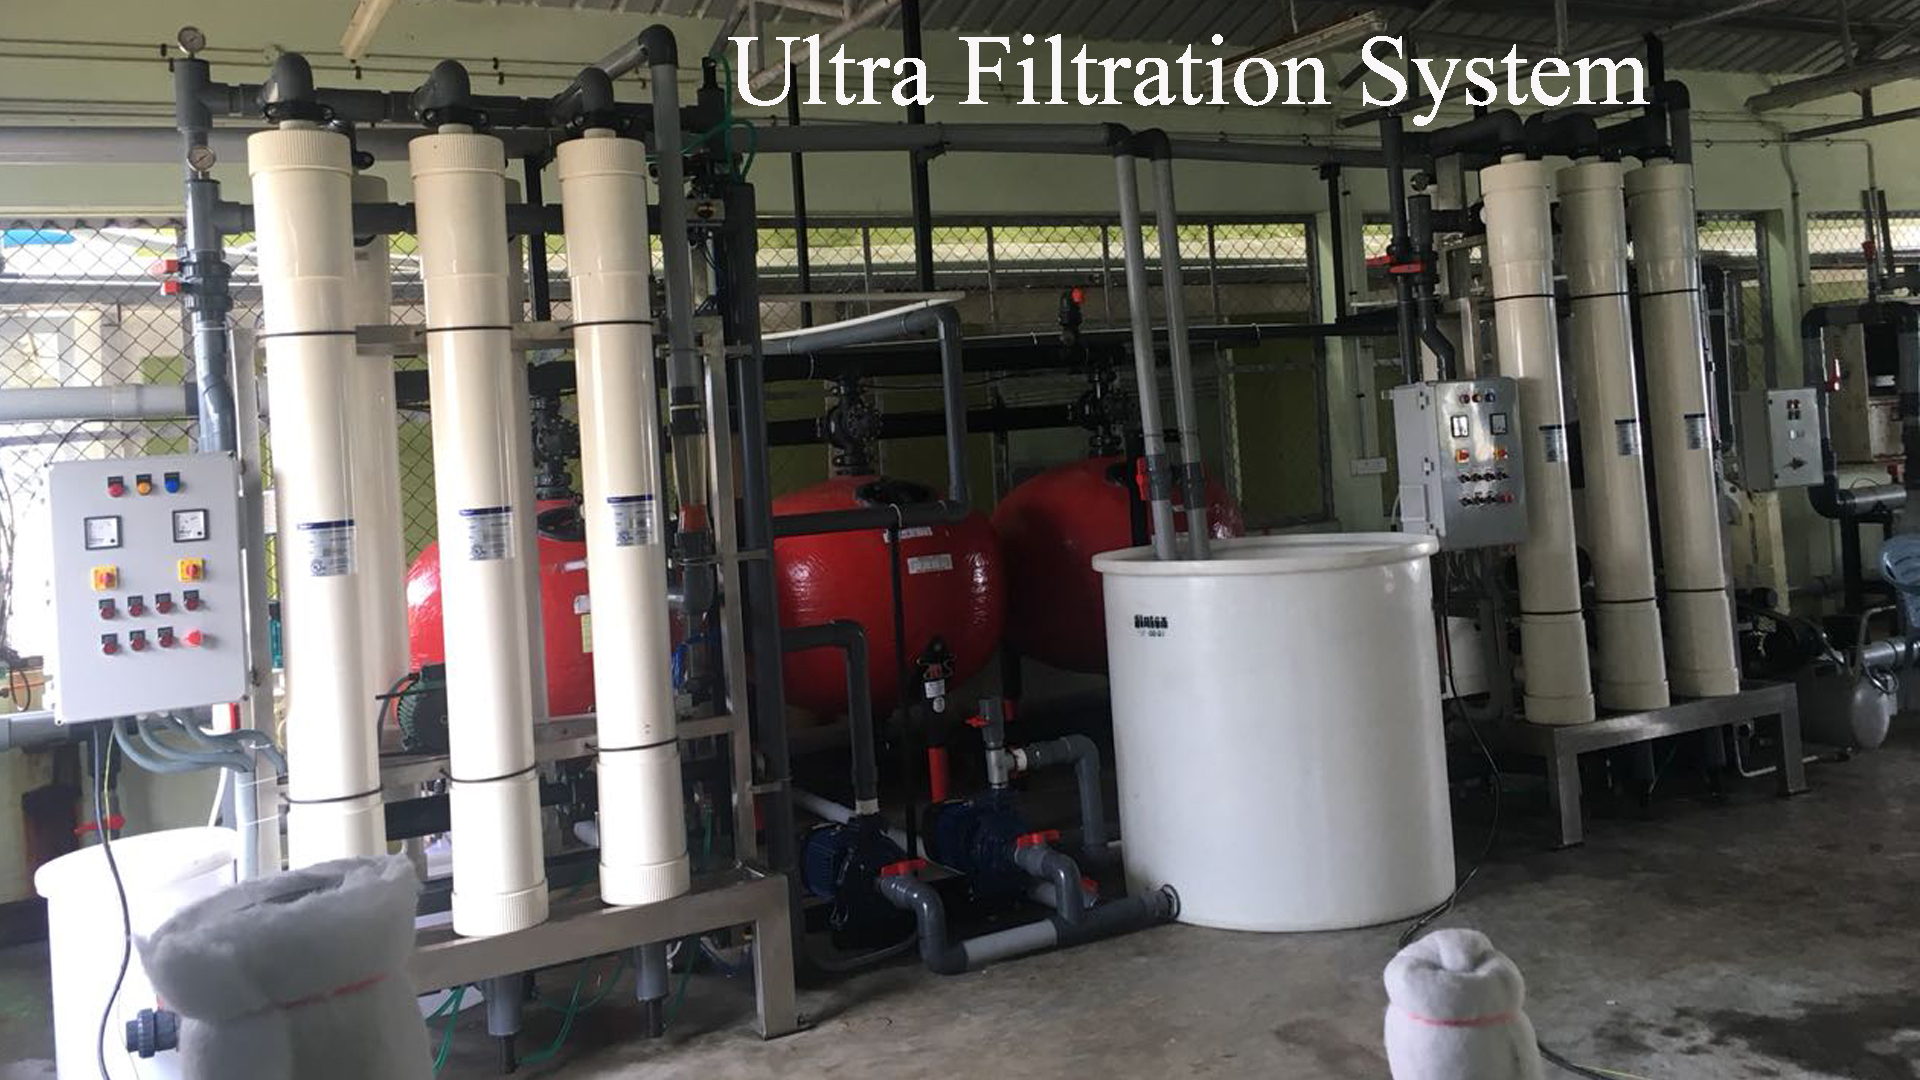 uf ro plant ultrafiltration system